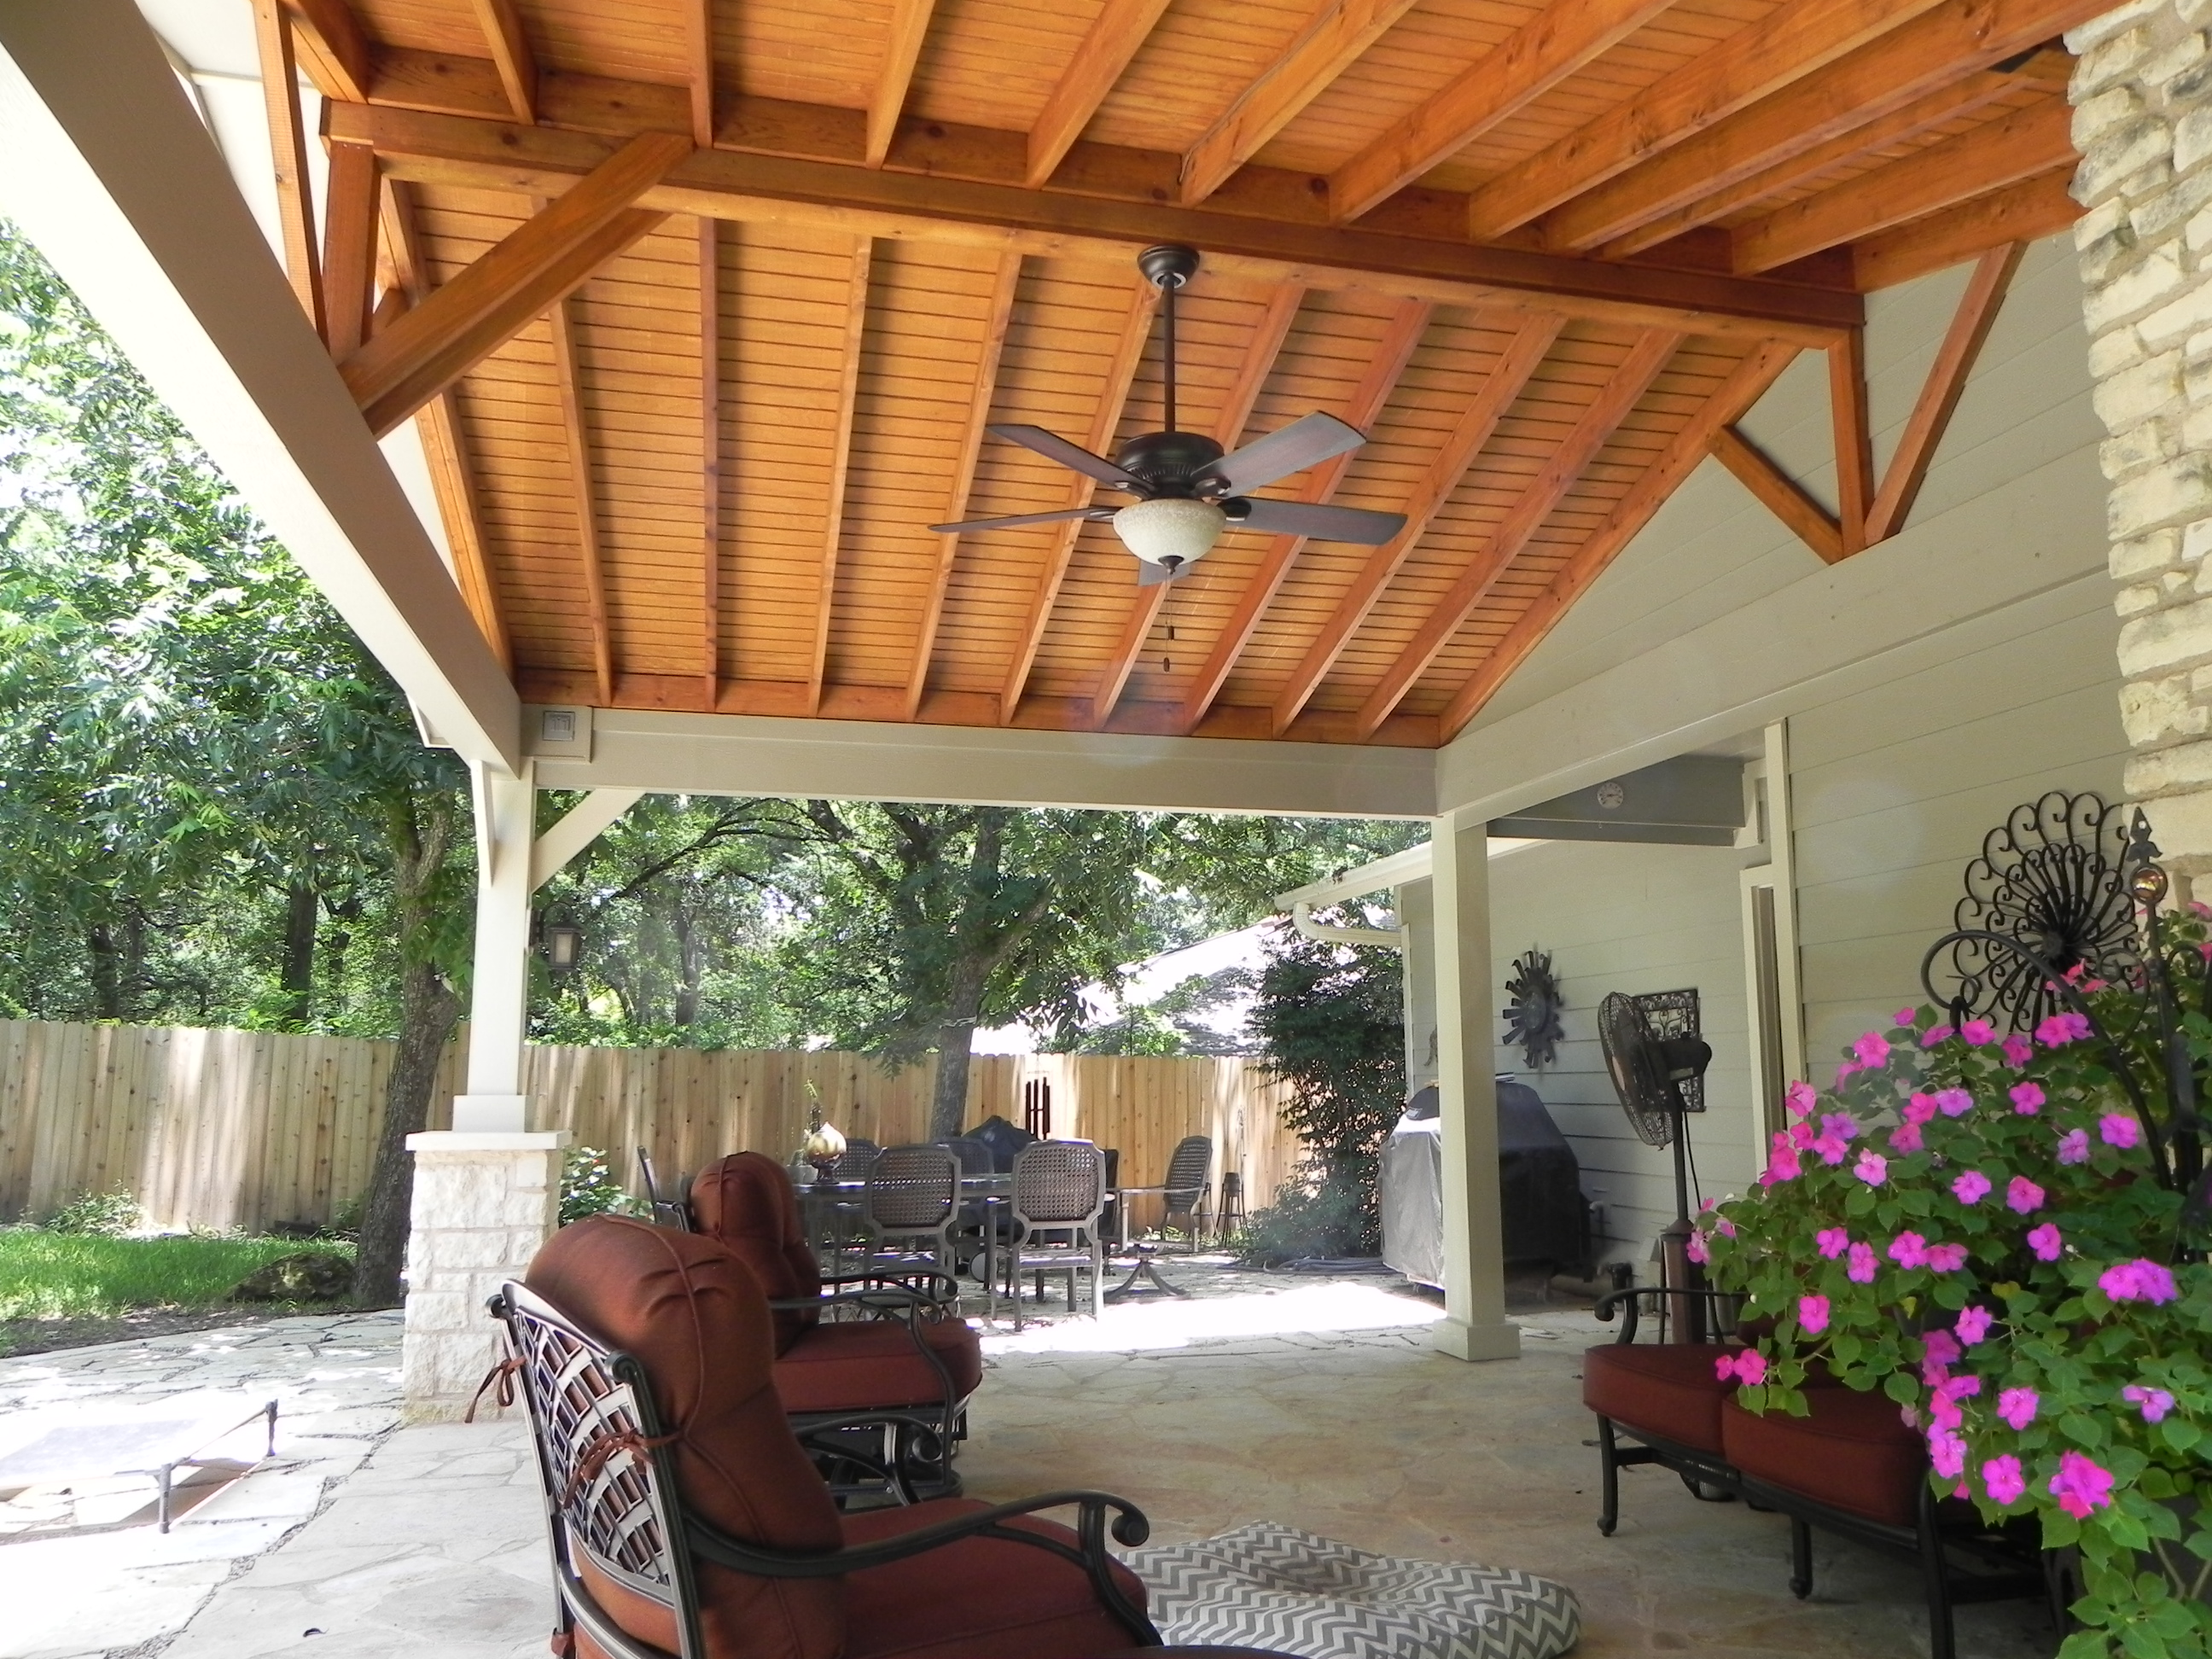 Austin Decks, Pergolas, Covered Patios, Porches, More. Paver Patio Prep. Outdoor Patio Ideas With Pool. Designer Patio Furniture Discount. Patio Pavers Portland. Patio Ideas With Curtains. Outdoor Patio Vaughan. Patio Swing Ikea. Patio Stones North York